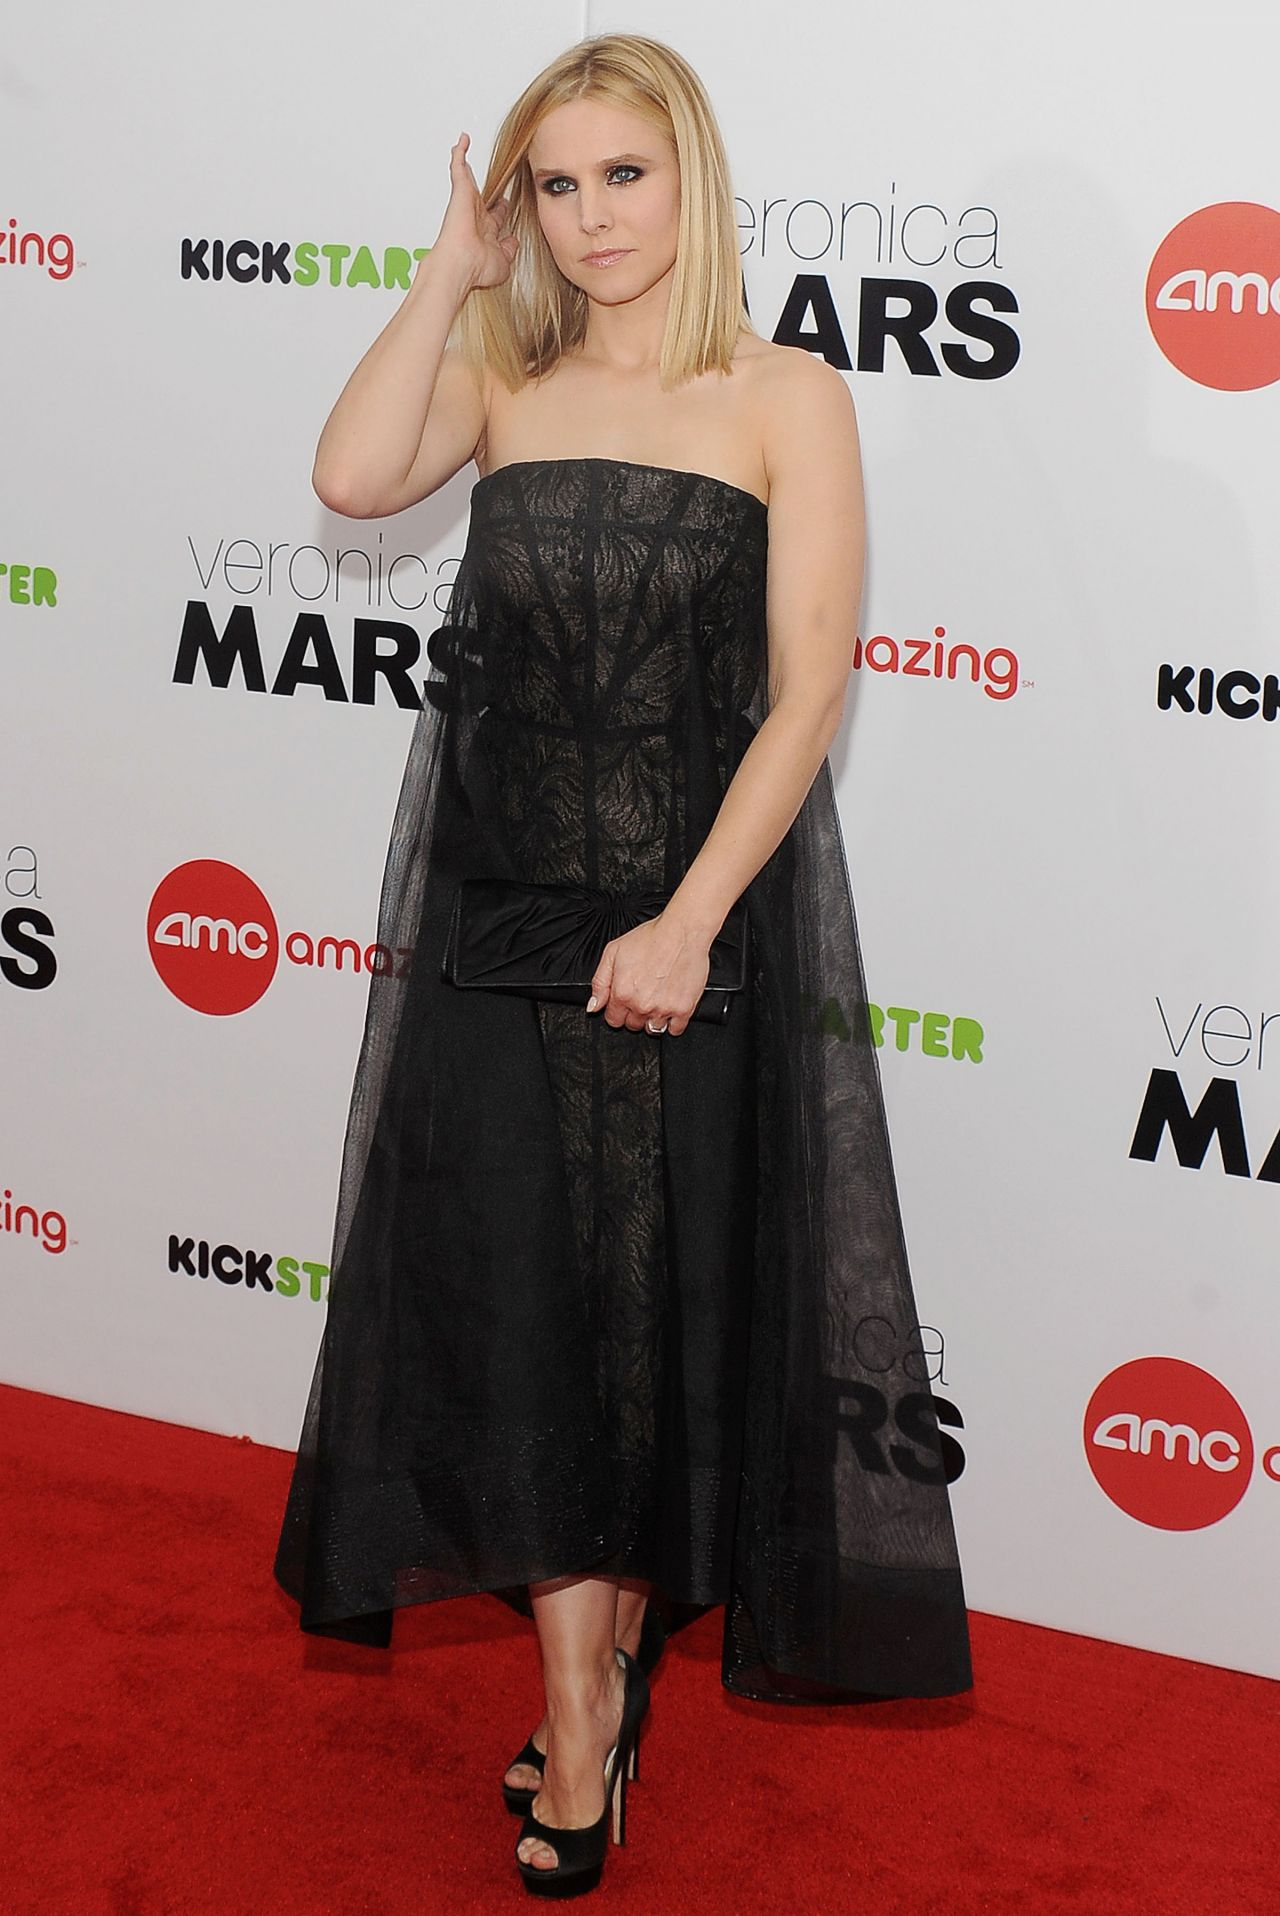 Kristen Bell On Red Carpet Veronica Mars Screening In